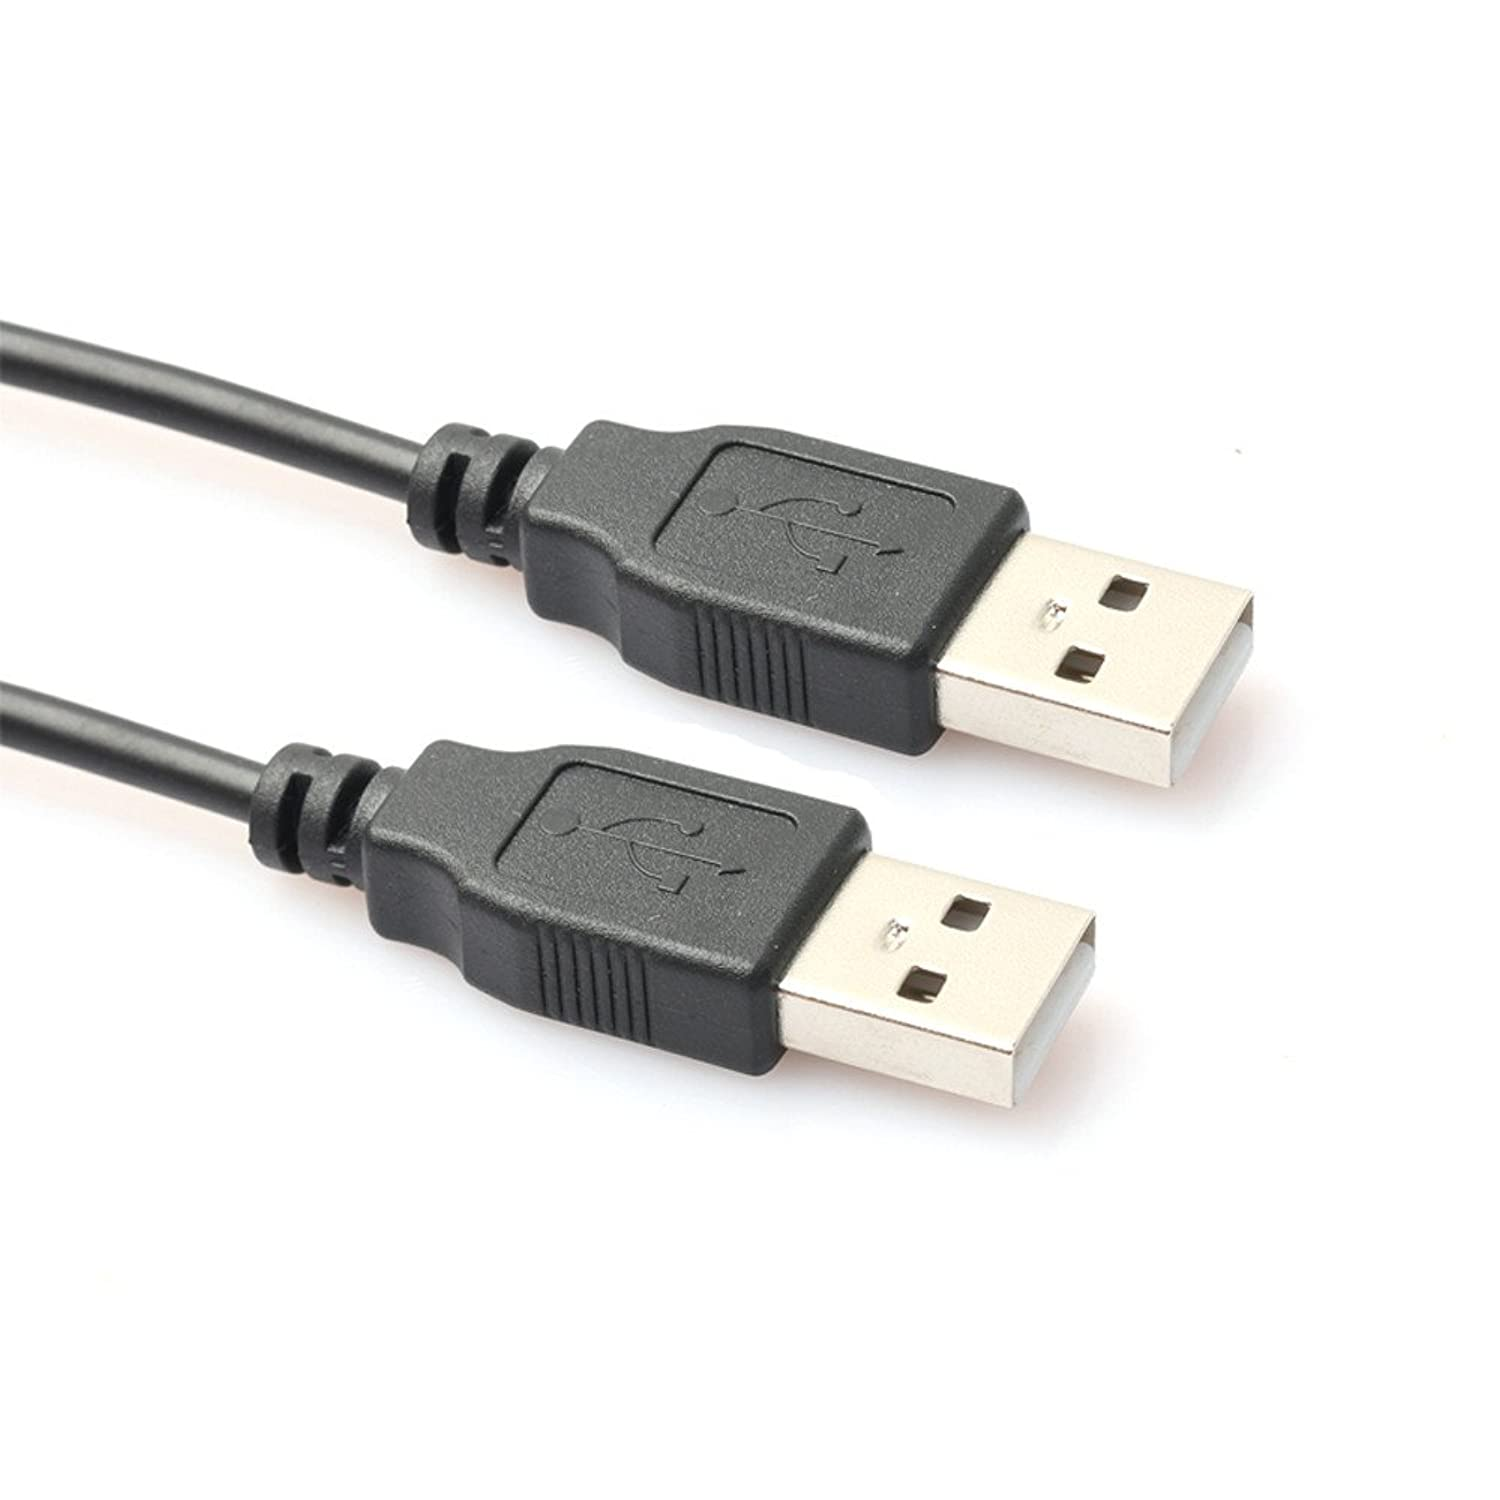 Mini Portable USB 2.0 Type A to A Cable Type A Male to Male Cable Cord for Data Transfer Hard Drive Enclosures, Printers, Modems, Cameras (0.8M) Supports Hi-Speed 480 Mbps (Black)